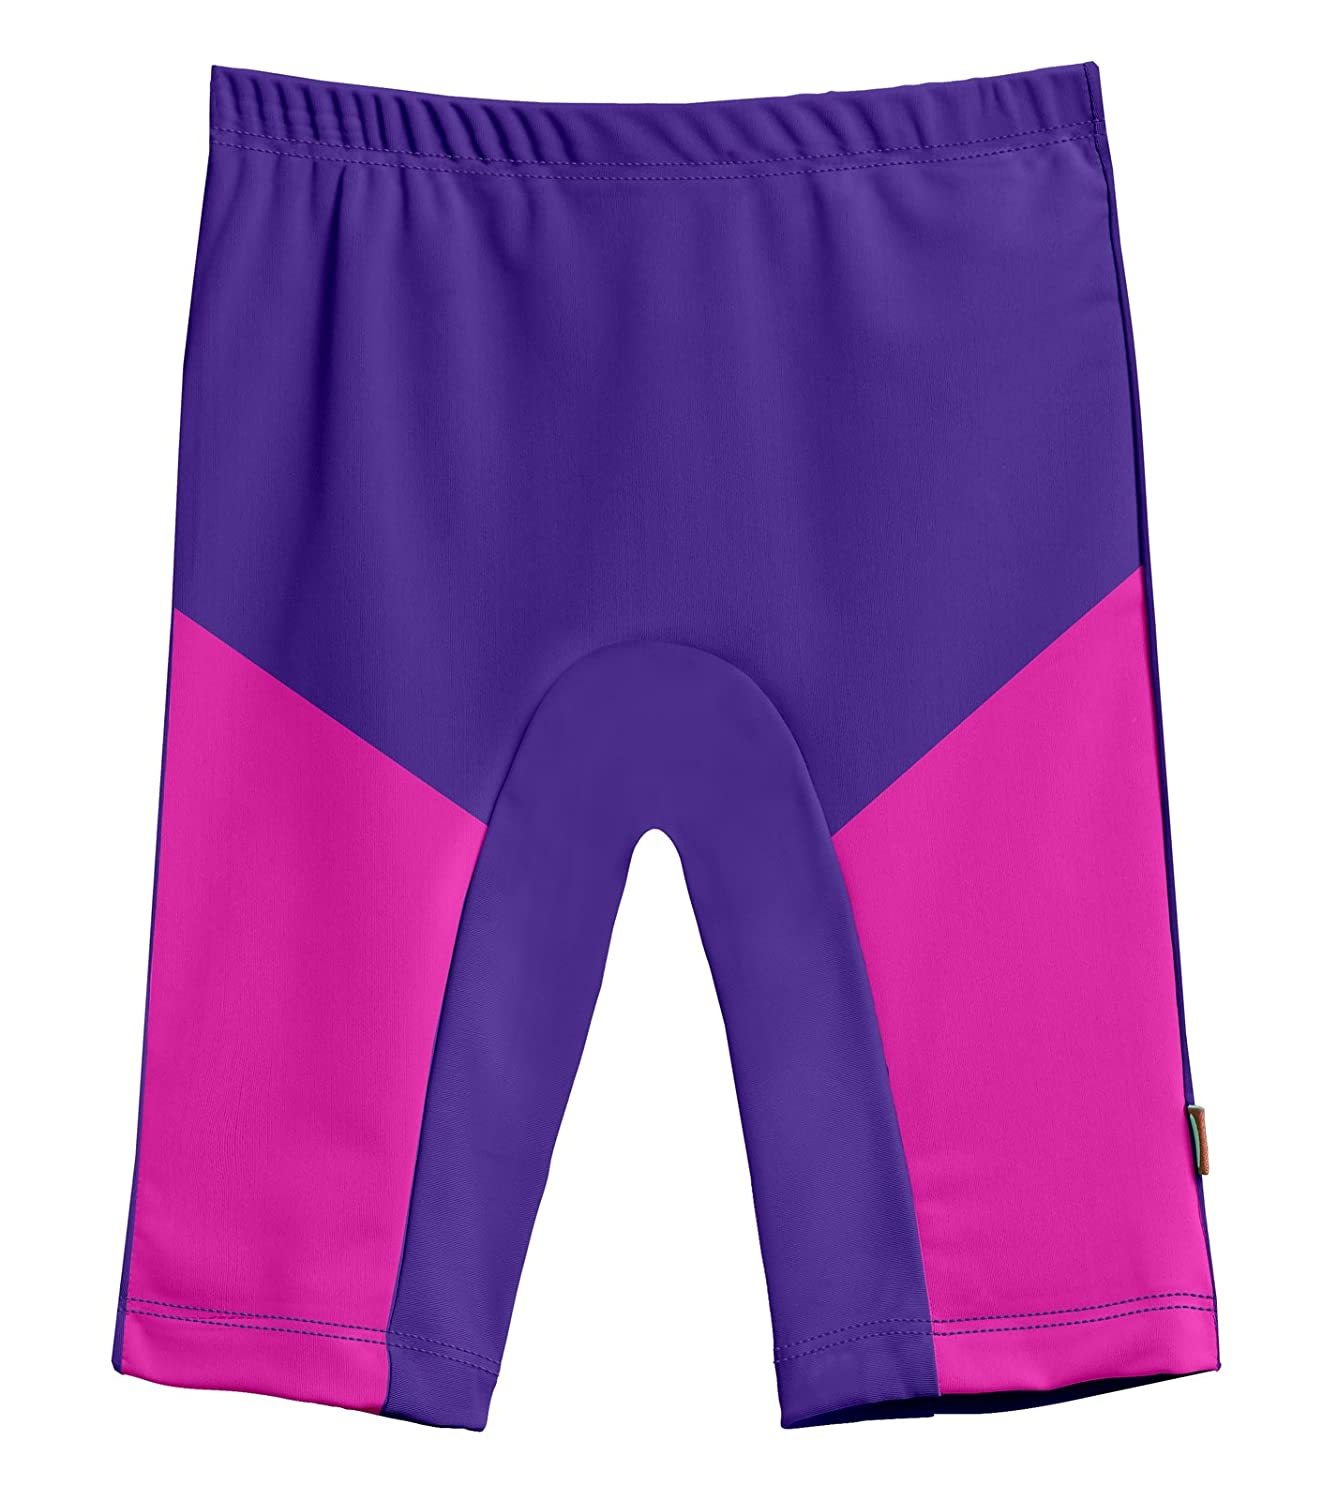 City Threads Boys Girls SPF50 Jammers Swim Shorts Bottoms Made in USA